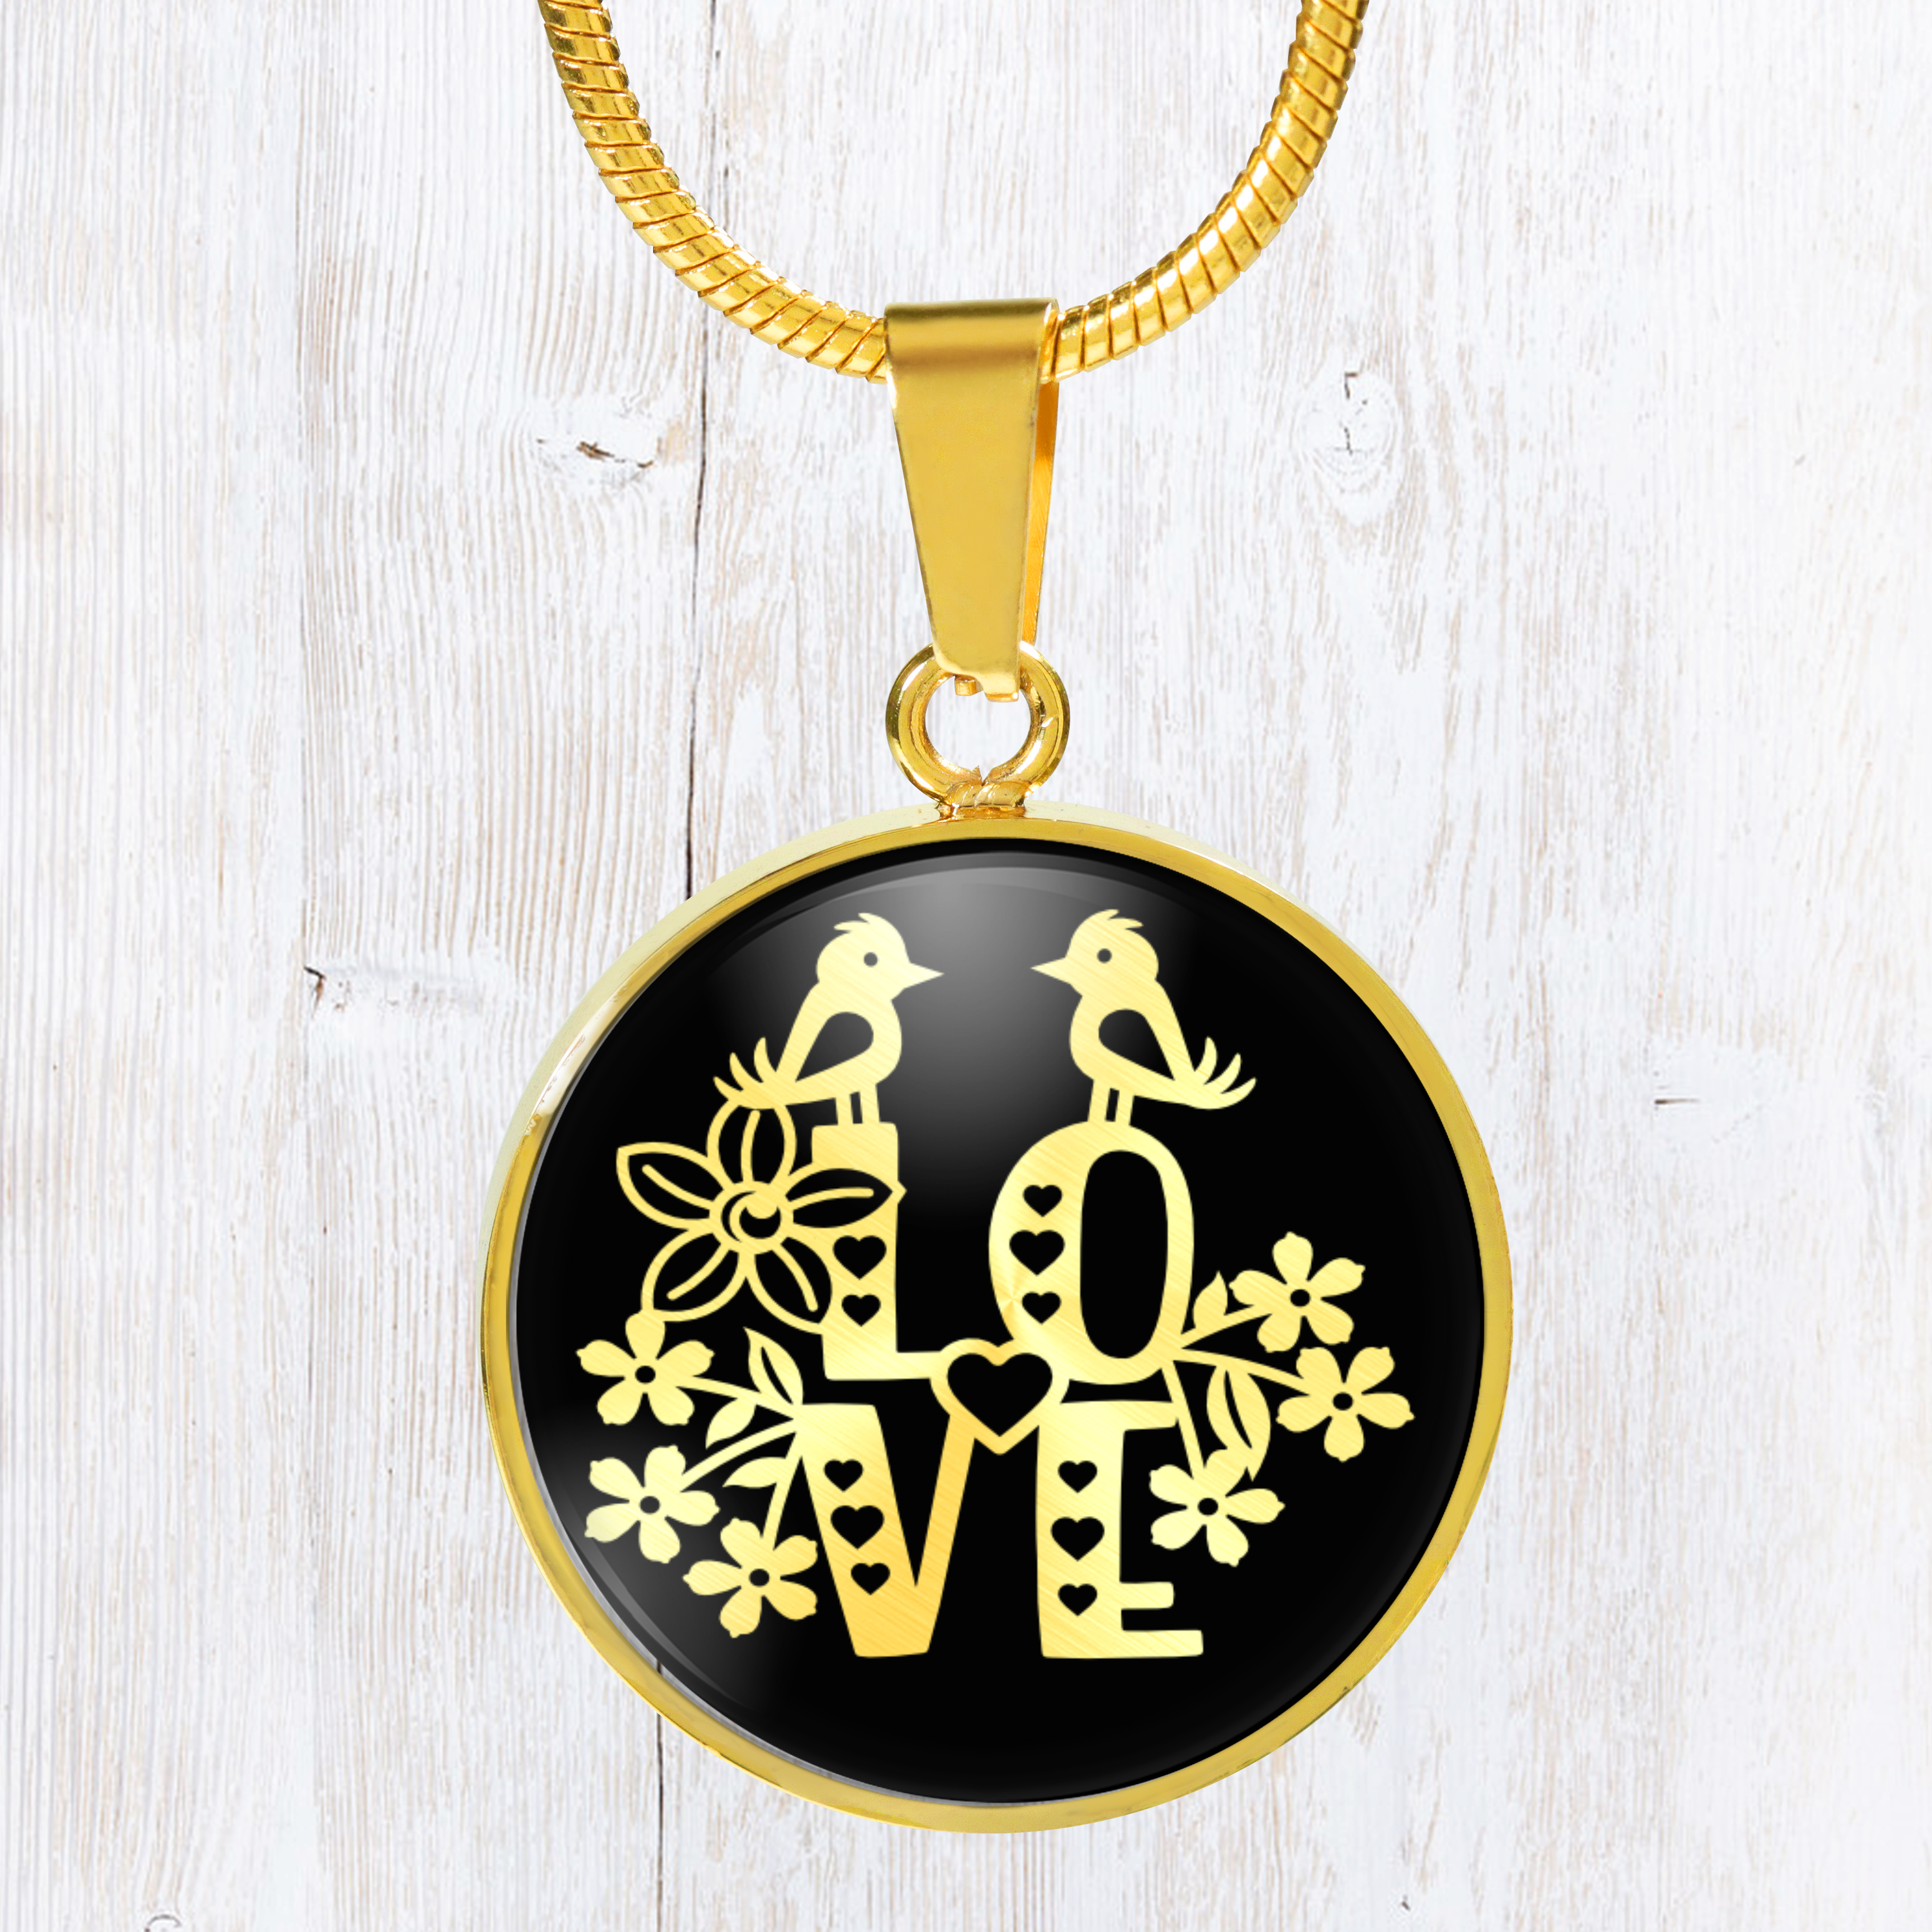 Love design with birds and flowers - beautiful stainless steel necklace  #design #art #giftguide #handmade #gift #birthday #gifting #giftideas #gifts #designtimegnc